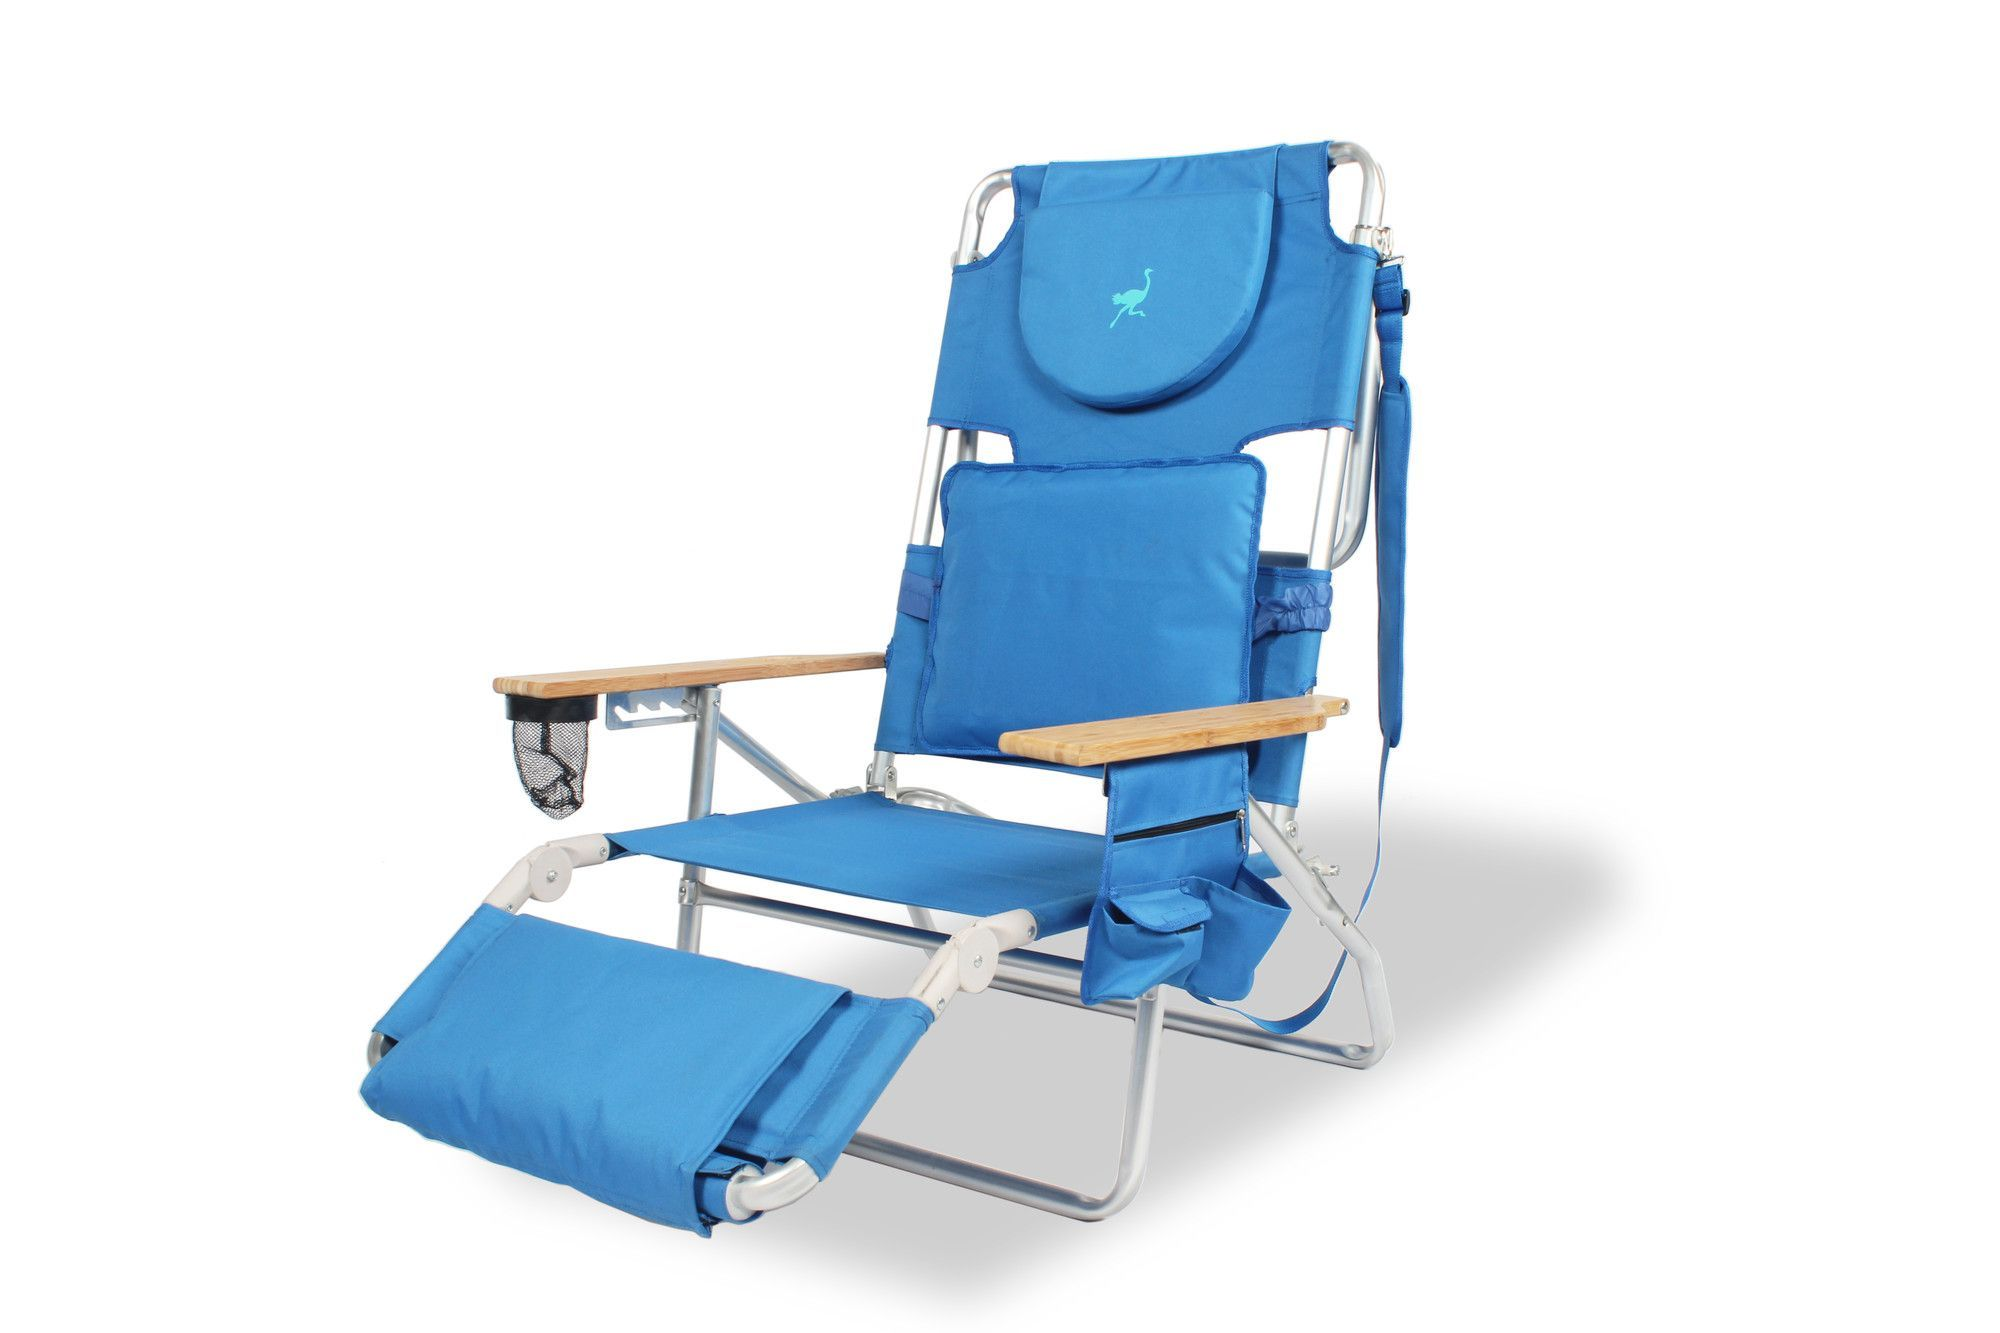 Padded Deluxe Beach Chair, by Ostrich Chair AllModern